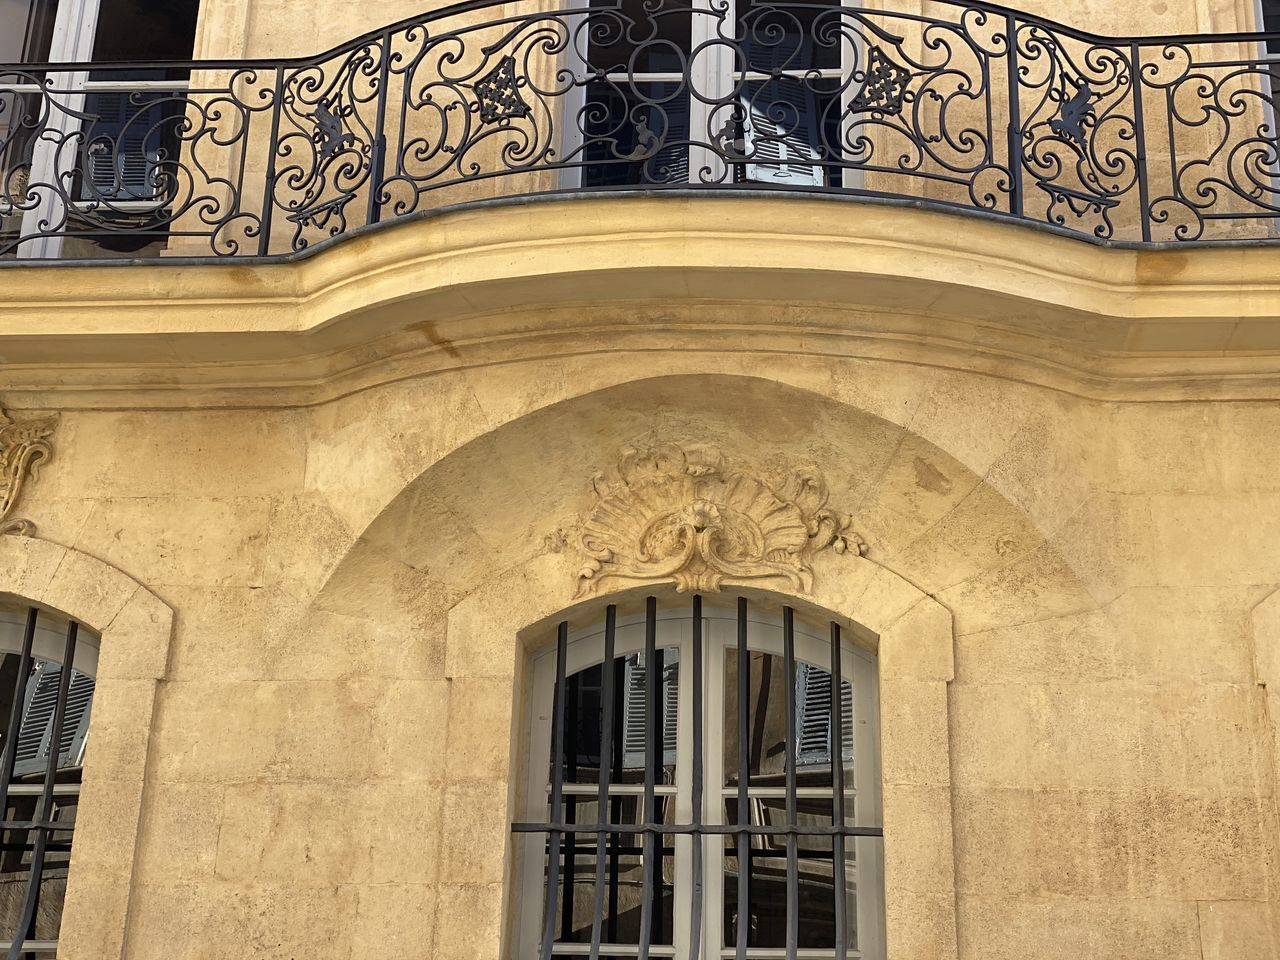 architecture, built structure, building exterior, window, building, low angle view, no people, day, arch, ornate, the past, history, wall - building feature, pattern, railing, design, balcony, outdoors, art and craft, architectural feature, wrought iron, bas relief, floral pattern